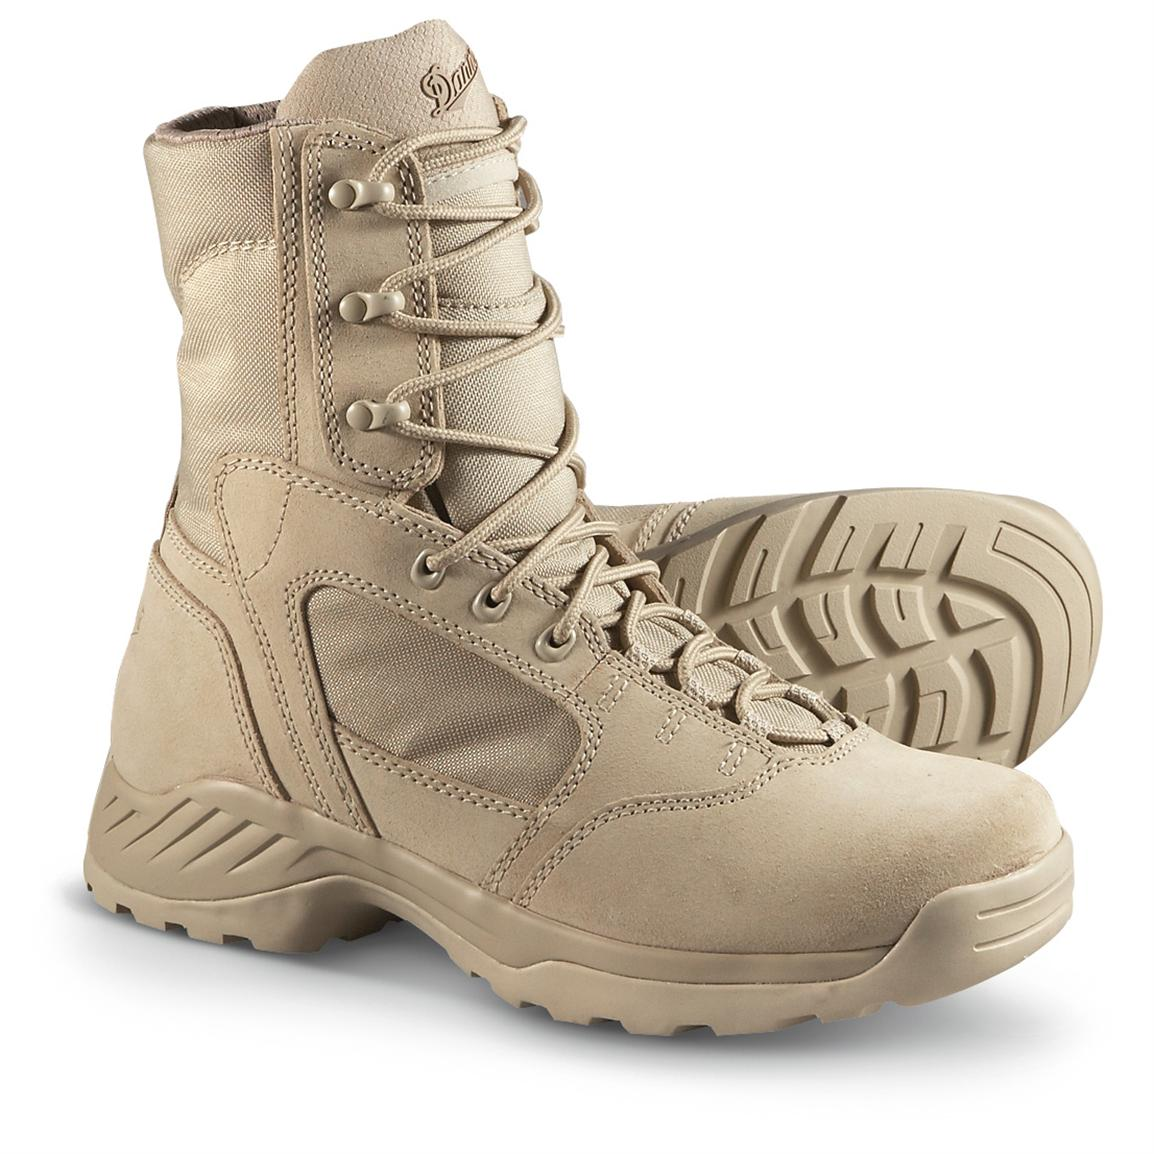 Danner Tactical Boots yPj2WzqI